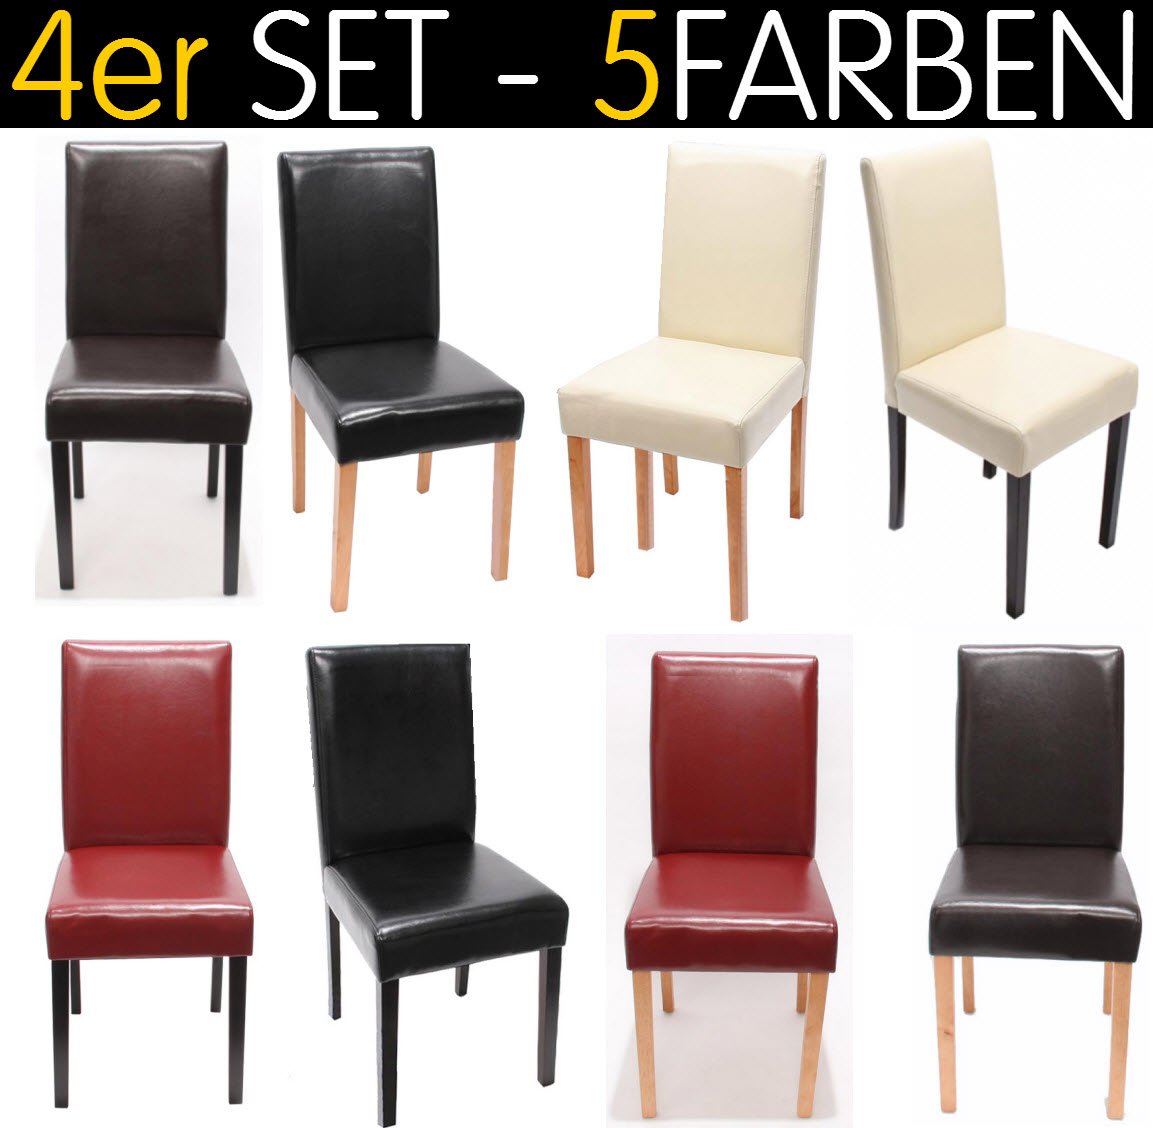 4x esszimmerst hle stoff 4er set esszimmerstuhl lehnstuhl stuhlset massiv st hle ebay. Black Bedroom Furniture Sets. Home Design Ideas